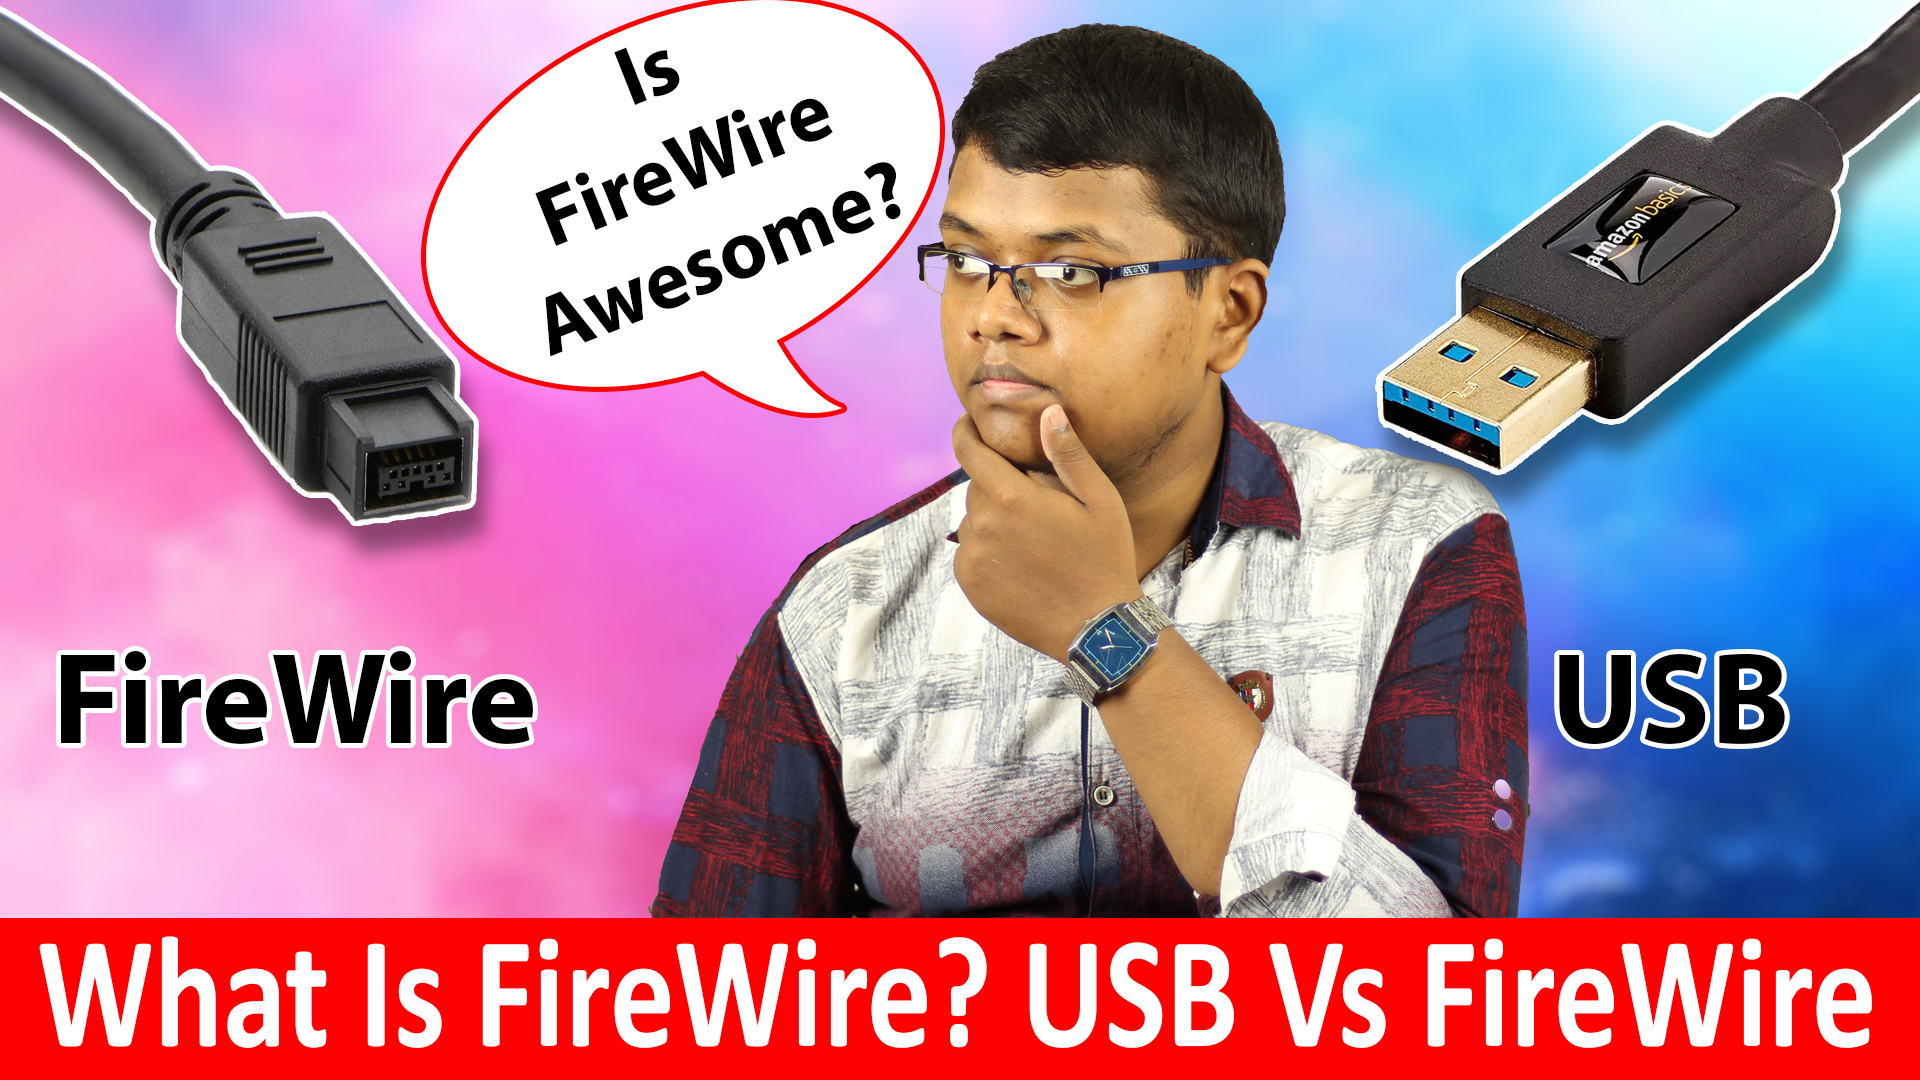 Can Firewire & USB Compete With Each Other?